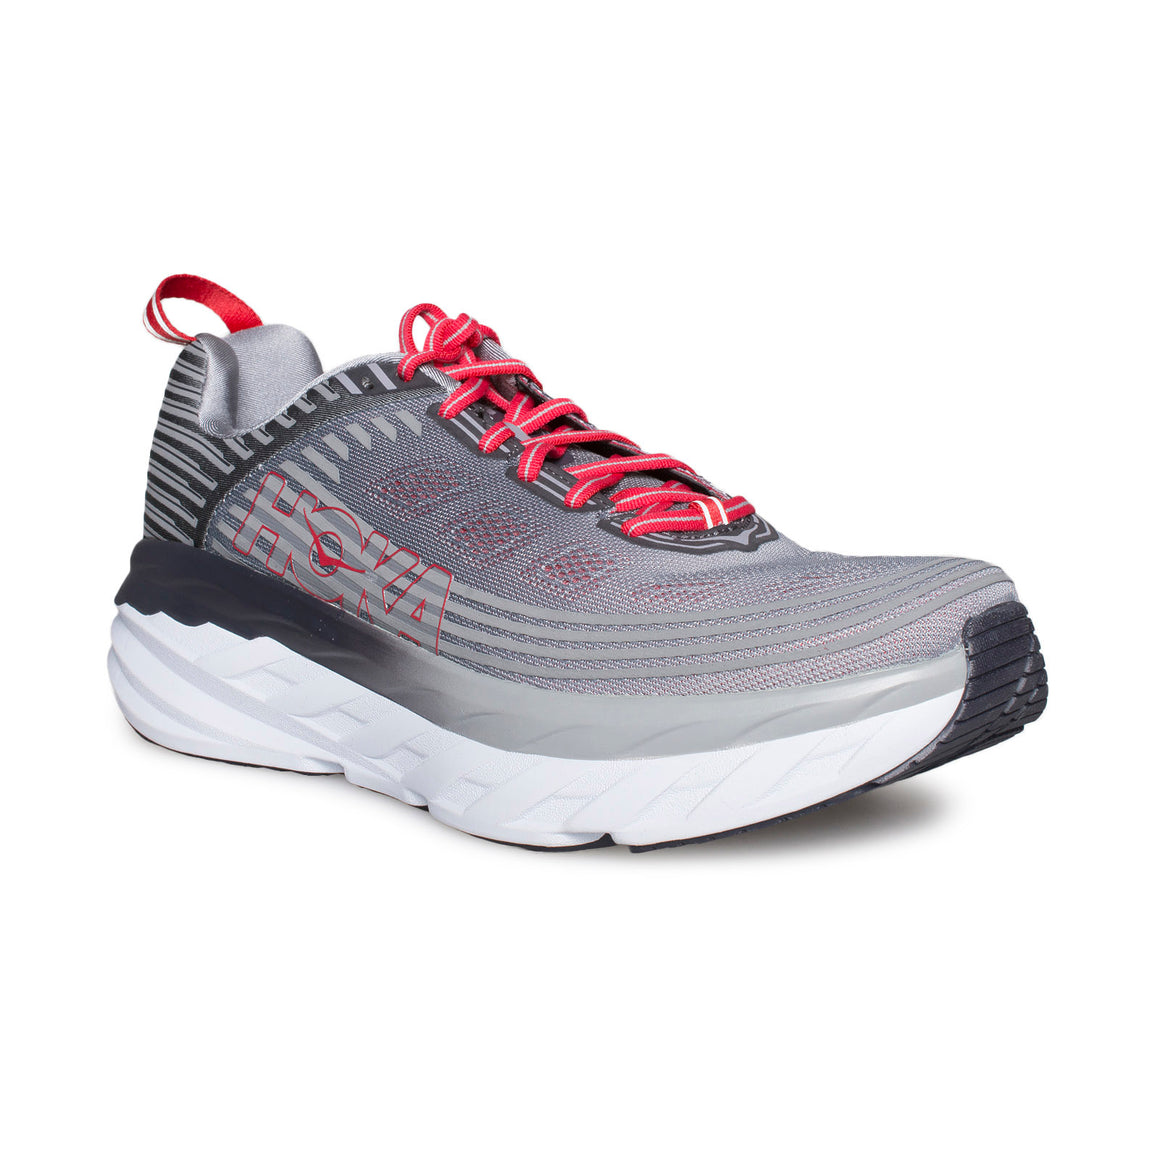 HOKA ONE ONE Bondi 6 Alloy / Steel Gray Running Shoes - Men's